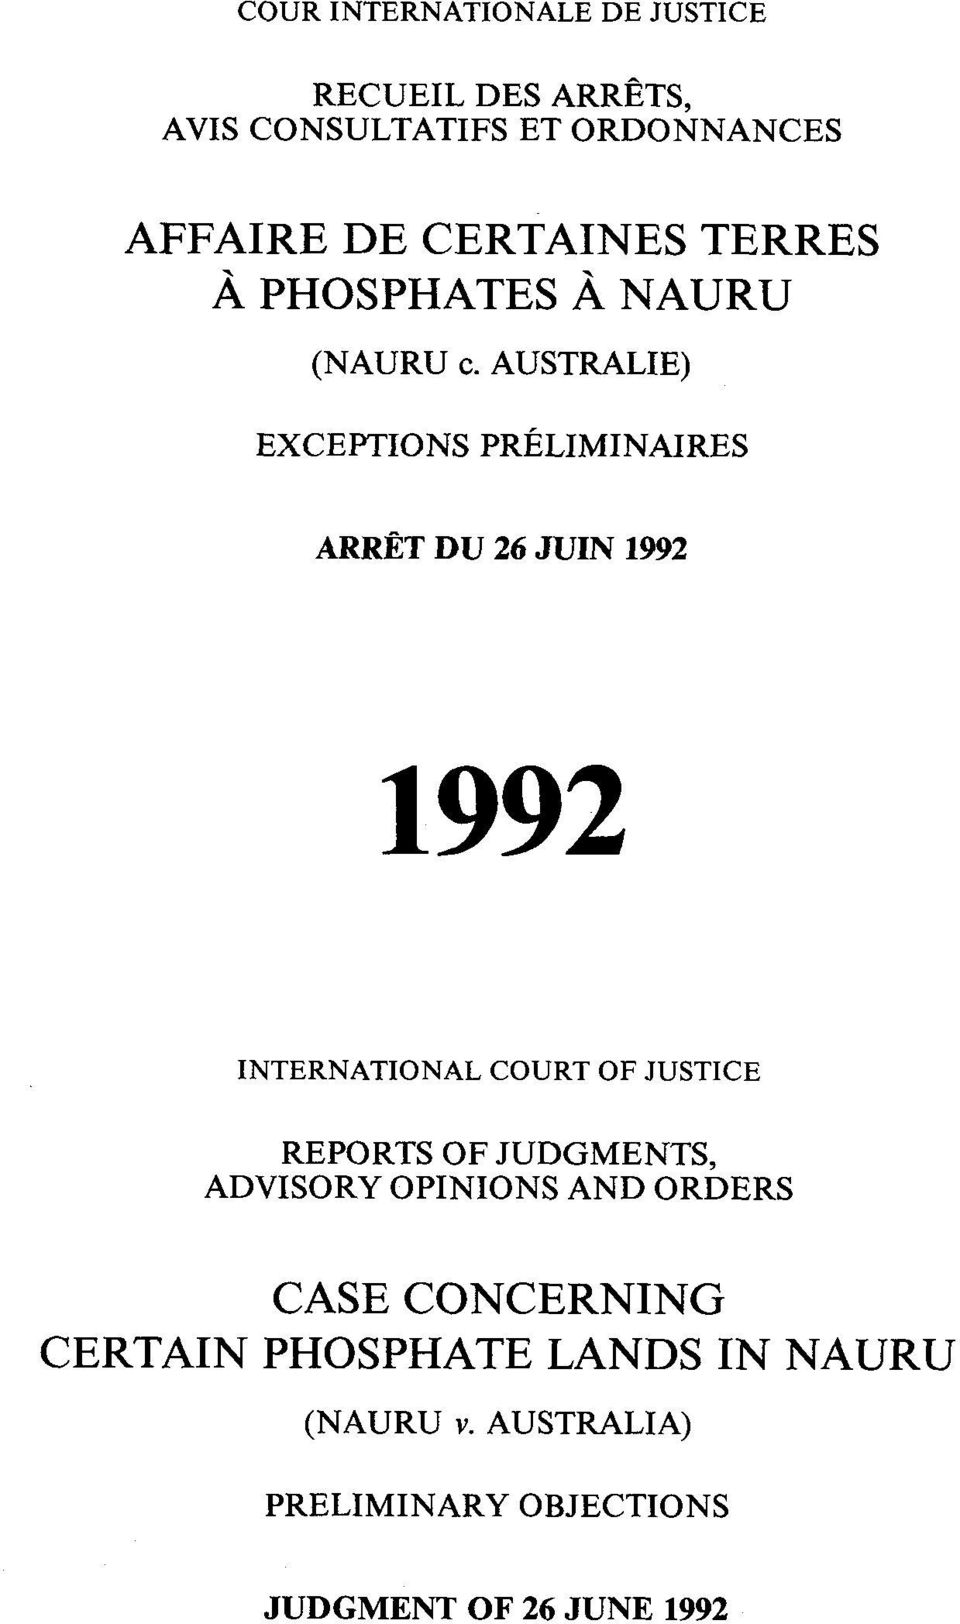 AUSTRALIE) ARRÊT DU 26 JUIN 1992 INTERNATIONAL COURT OF JUSTICE REPORTS OF JUDGMENTS,